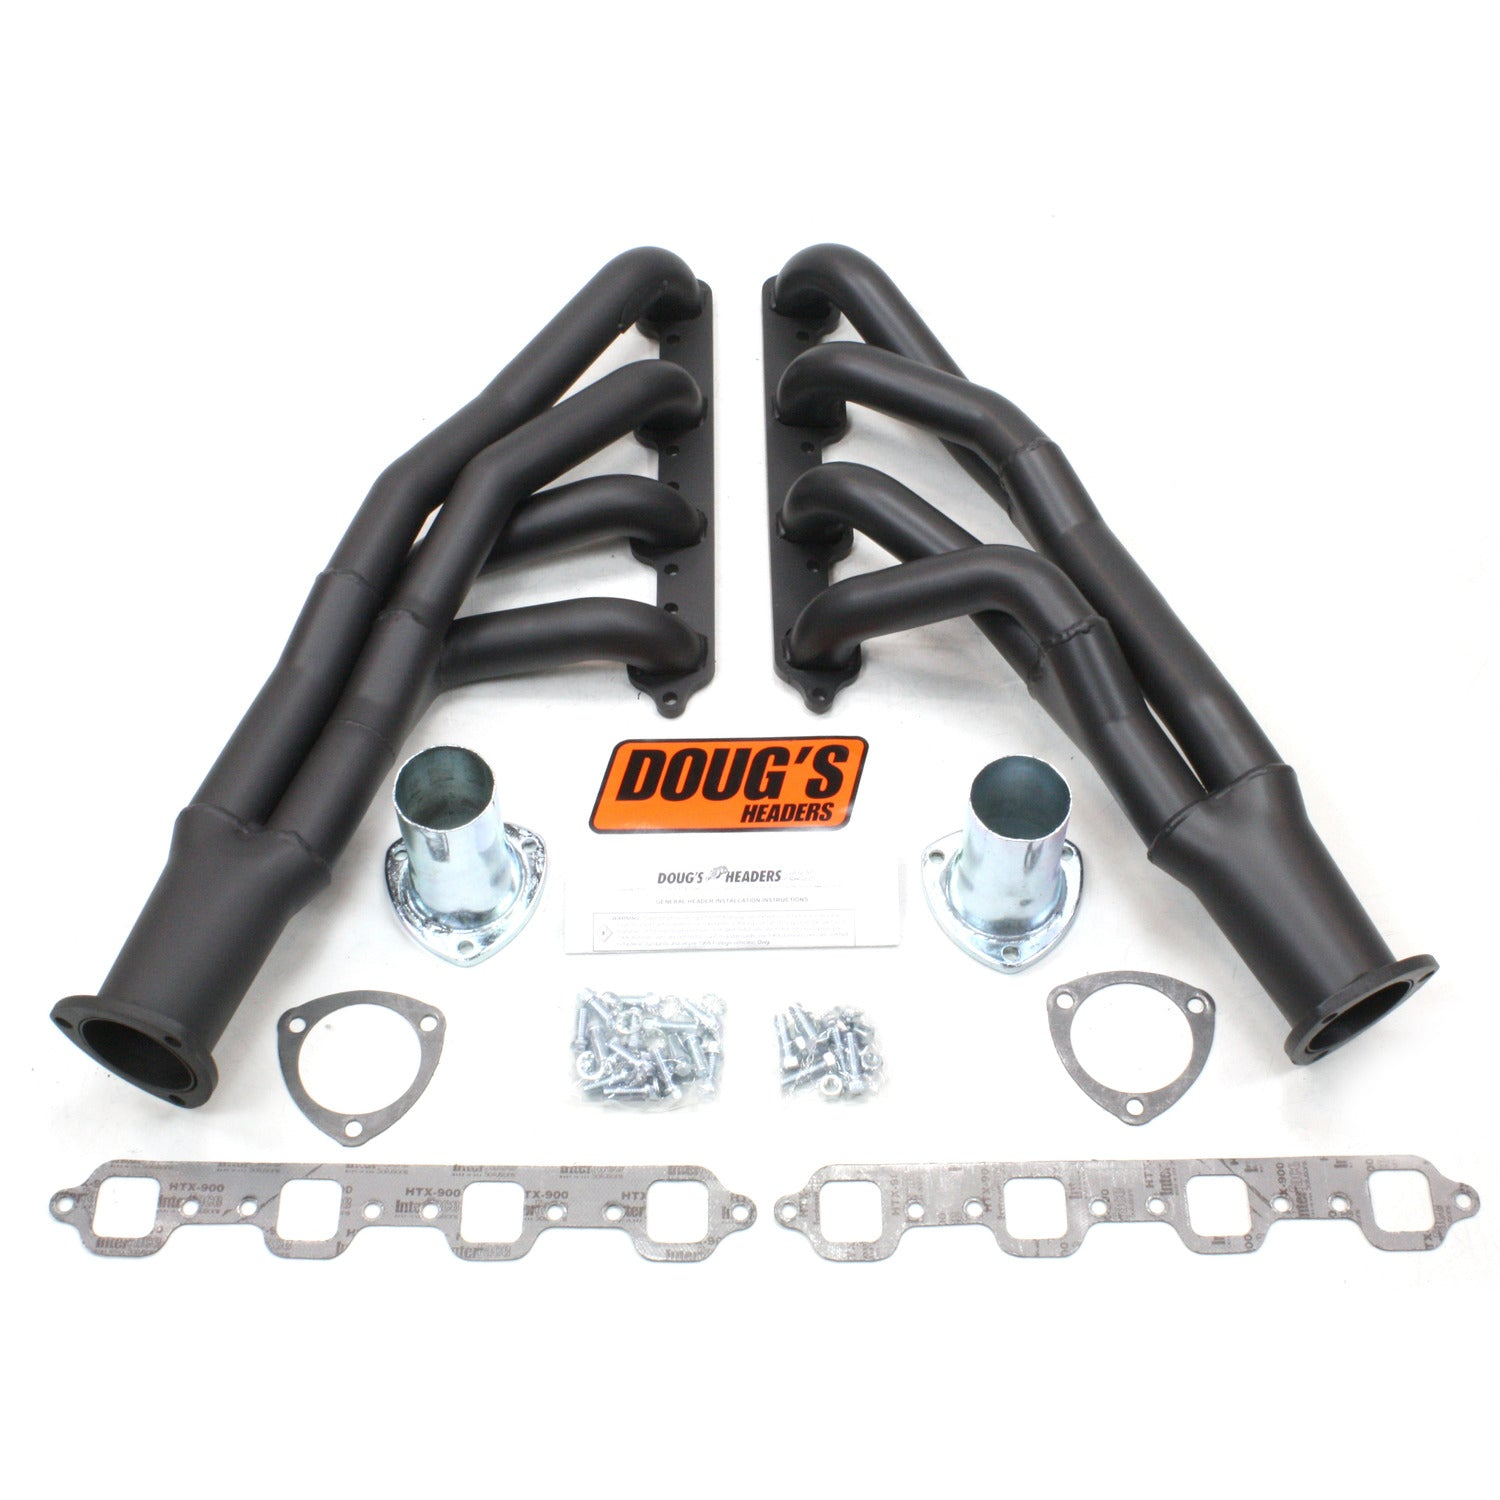 "Doug's Headers D669Y-1B 1 3/4"" Tri-Y Header Ford Mustang 351W 67-70 Hi-Temp Black Coating"